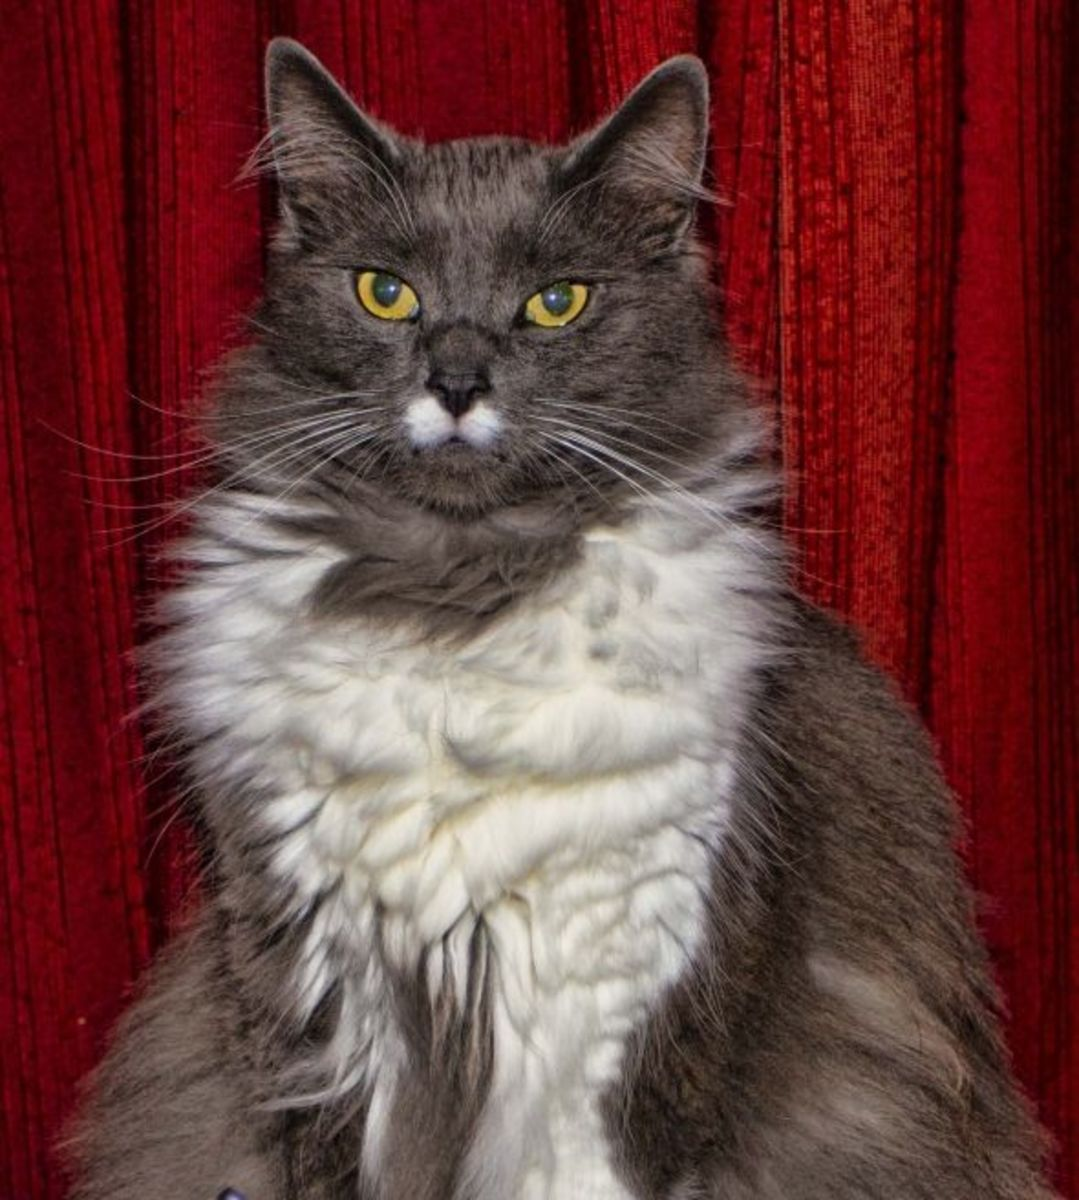 Greebo, our Maine Coon cat